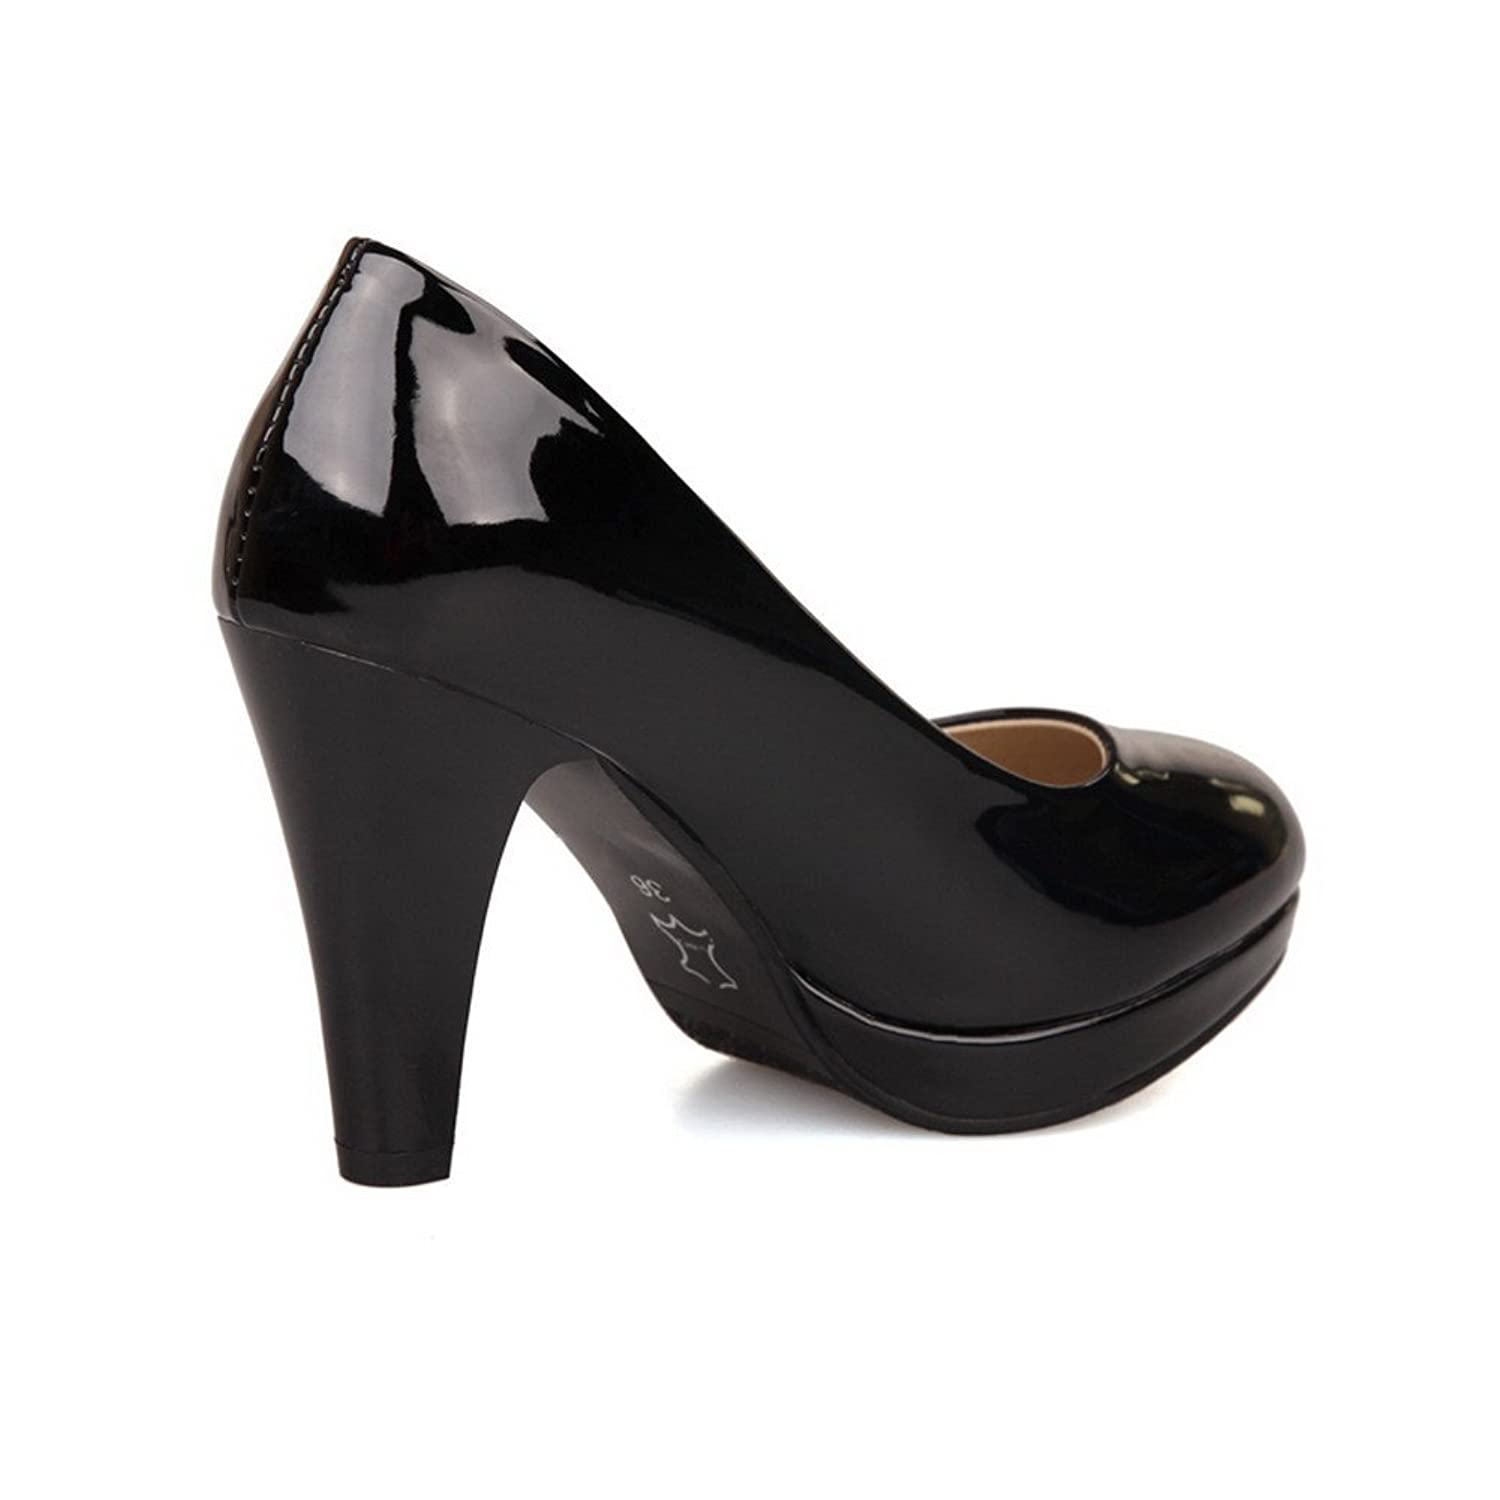 Balamasa Womens Pull On High Heels Solid Pumps Shoes: Amazon.co.uk: Shoes &  Bags